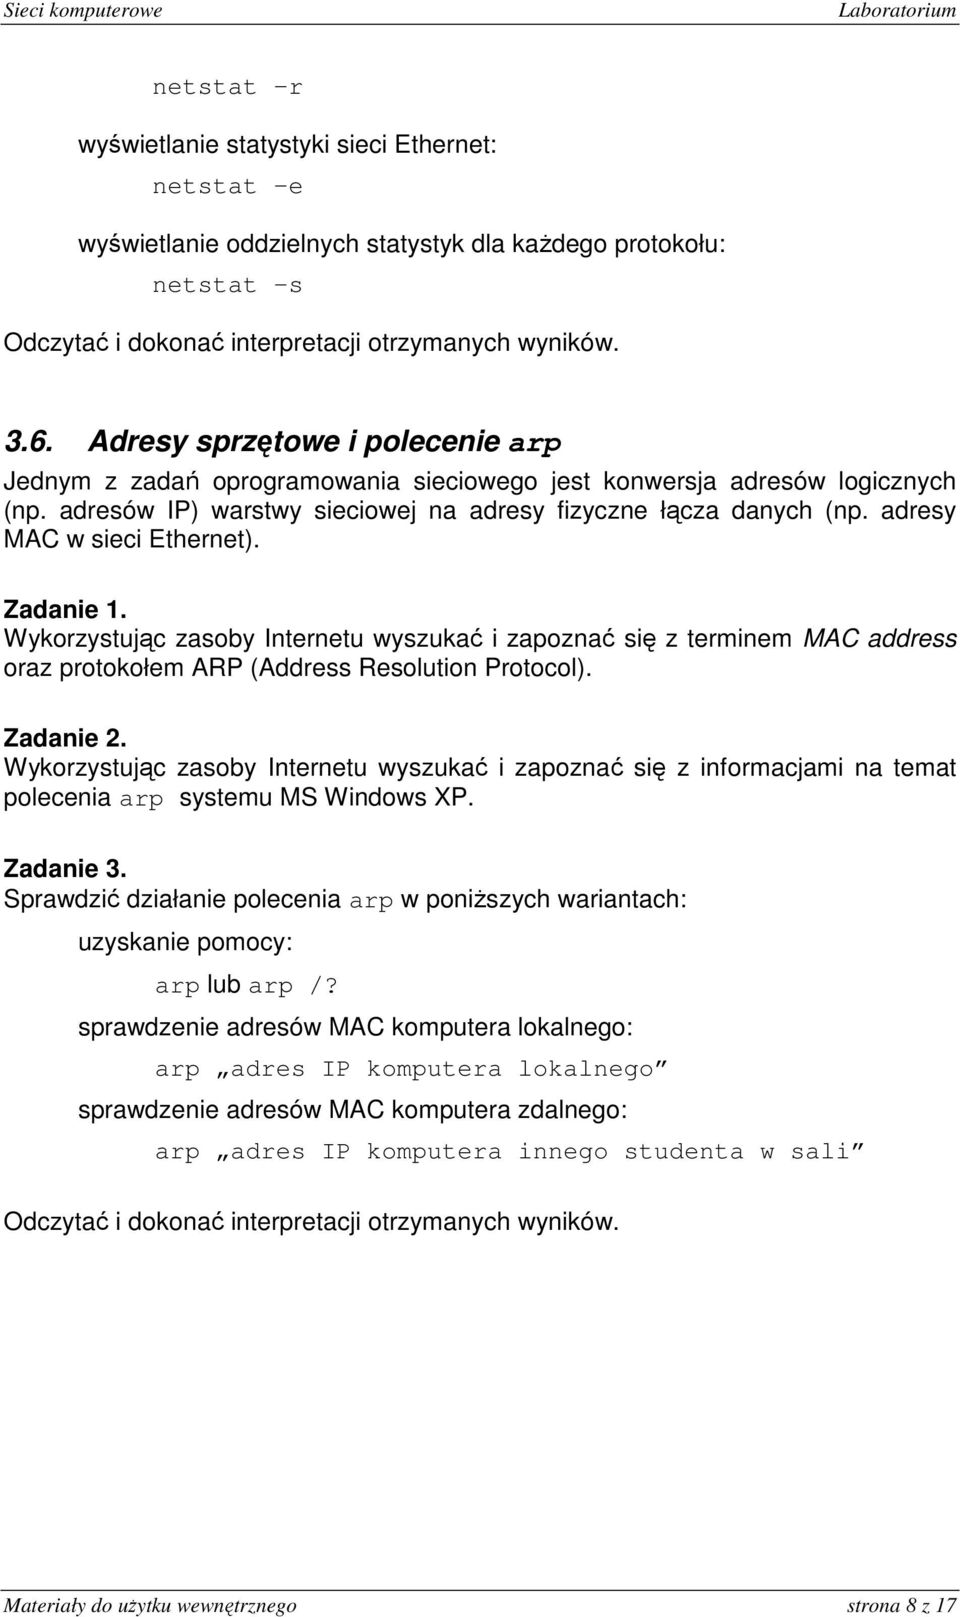 adresy MAC w sieci Ethernet). Wykorzystując zasoby Internetu wyszukać i zapoznać się z terminem MAC address oraz protokołem ARP (Address Resolution Protocol). polecenia arp systemu MS Windows XP.